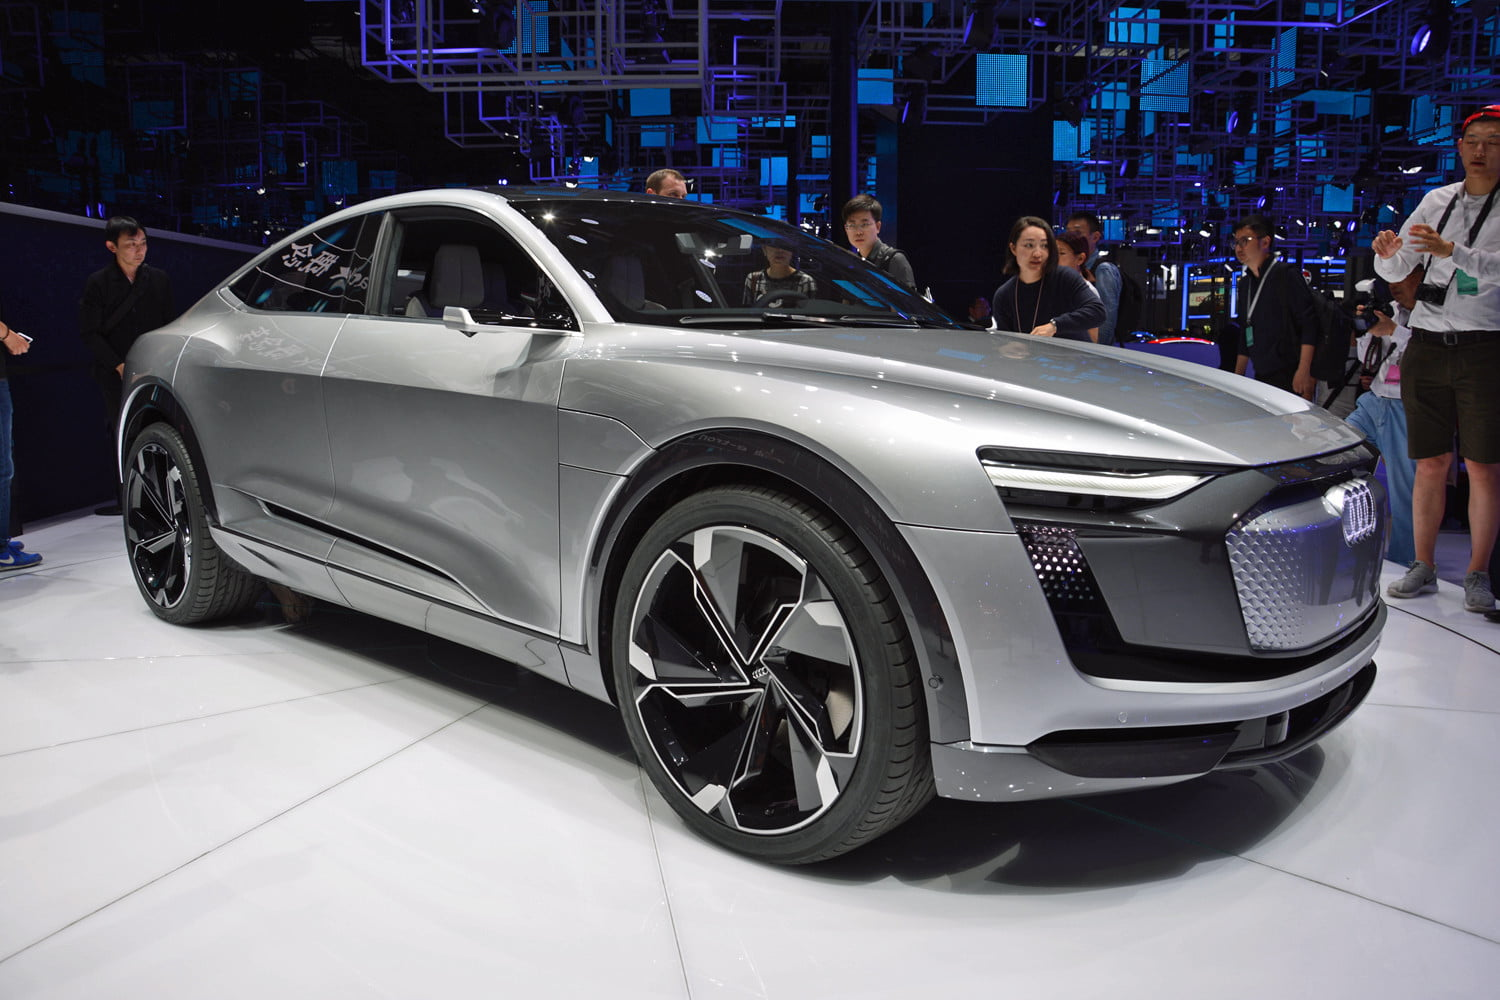 Audi Plans 10 Electric Cars By 2025, Most On A Modular Platform | Digital  Trends